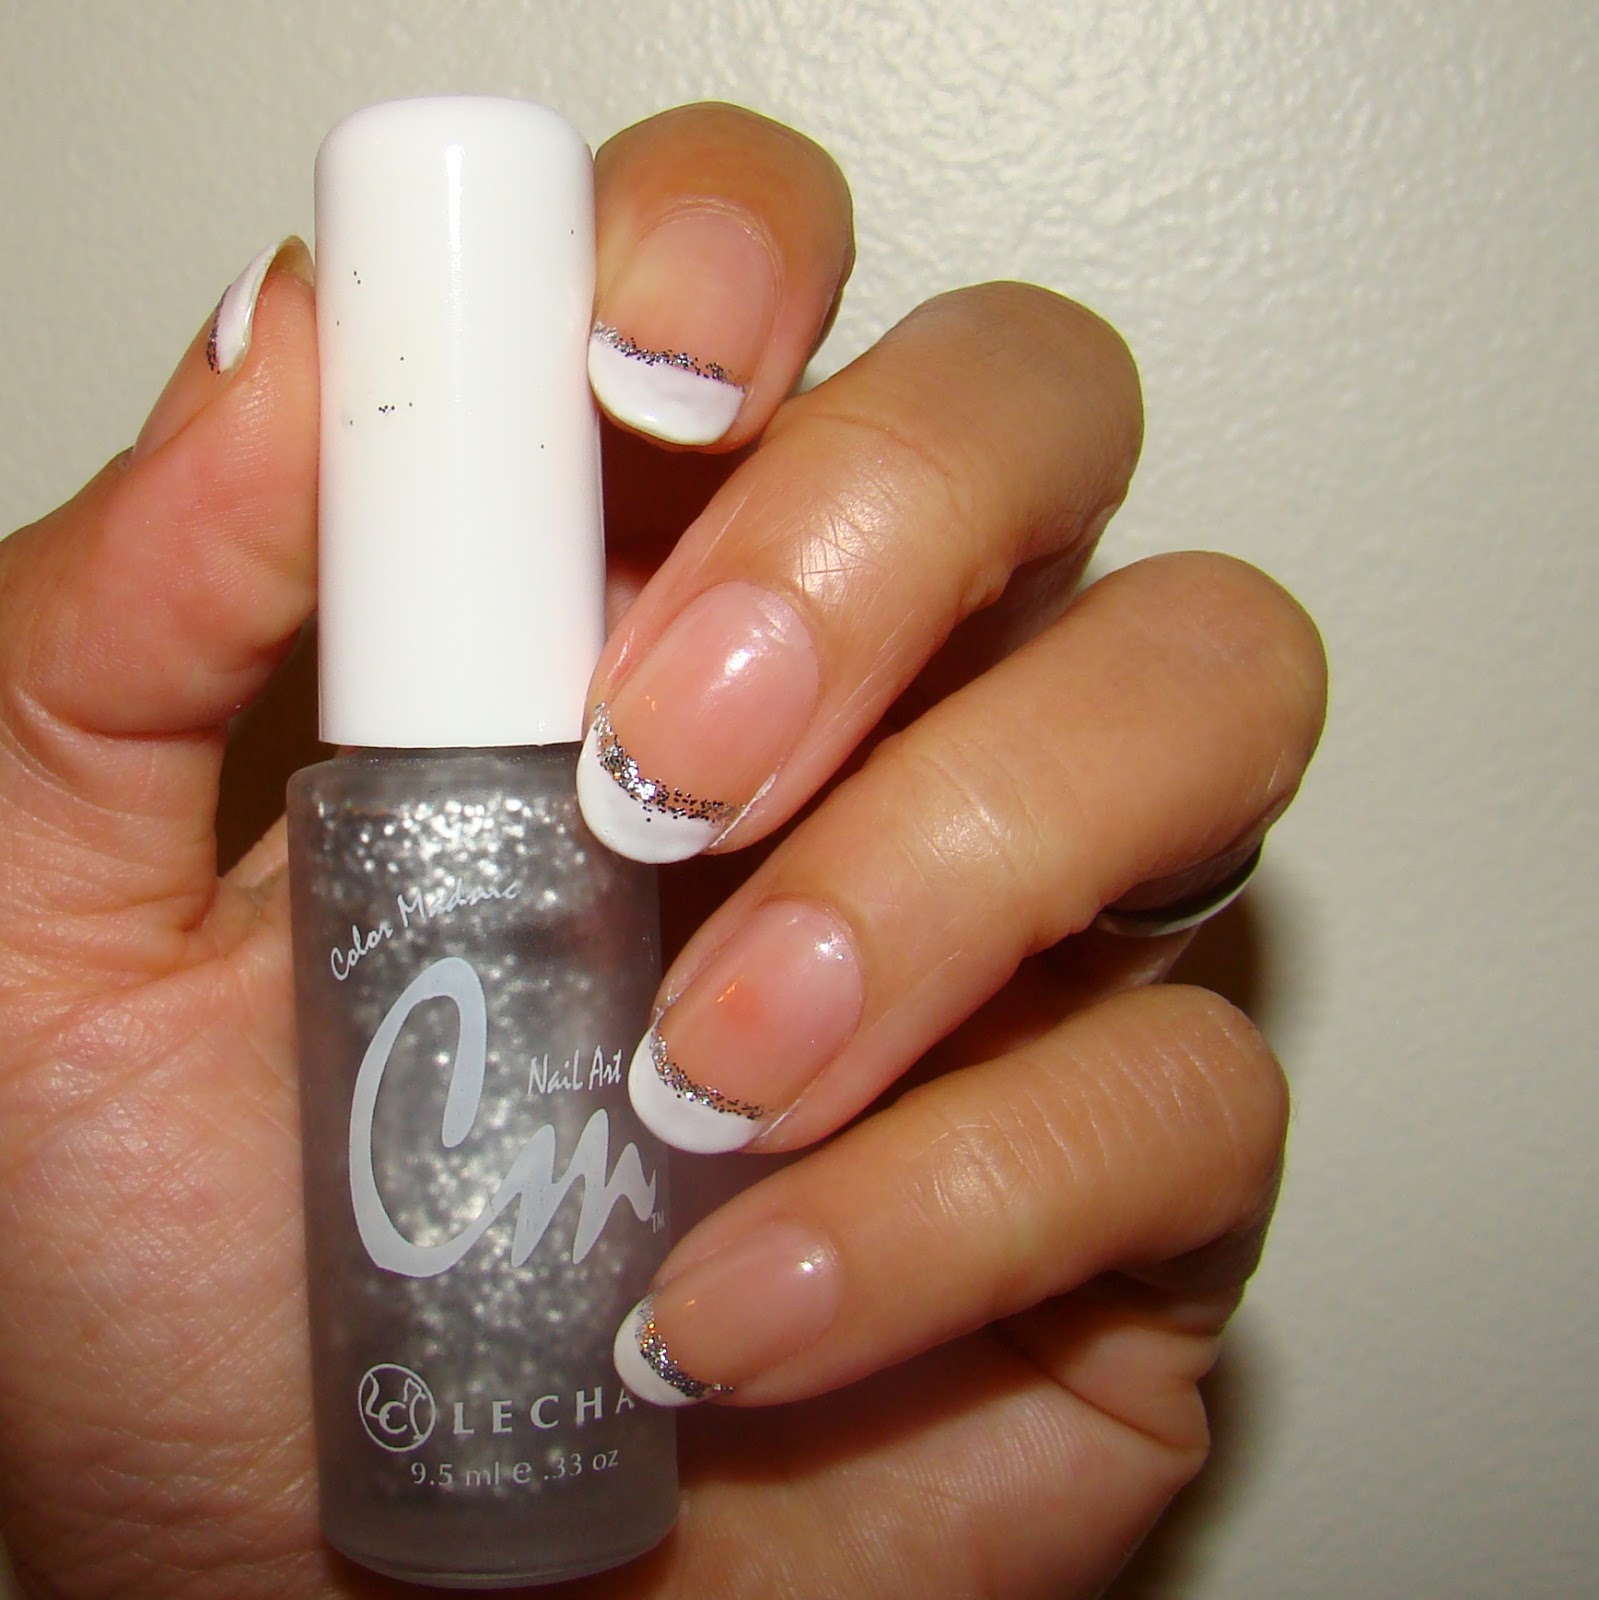 Pretty Nails and Tea: Shimmer French Manicure | Soak Off Gel Polish